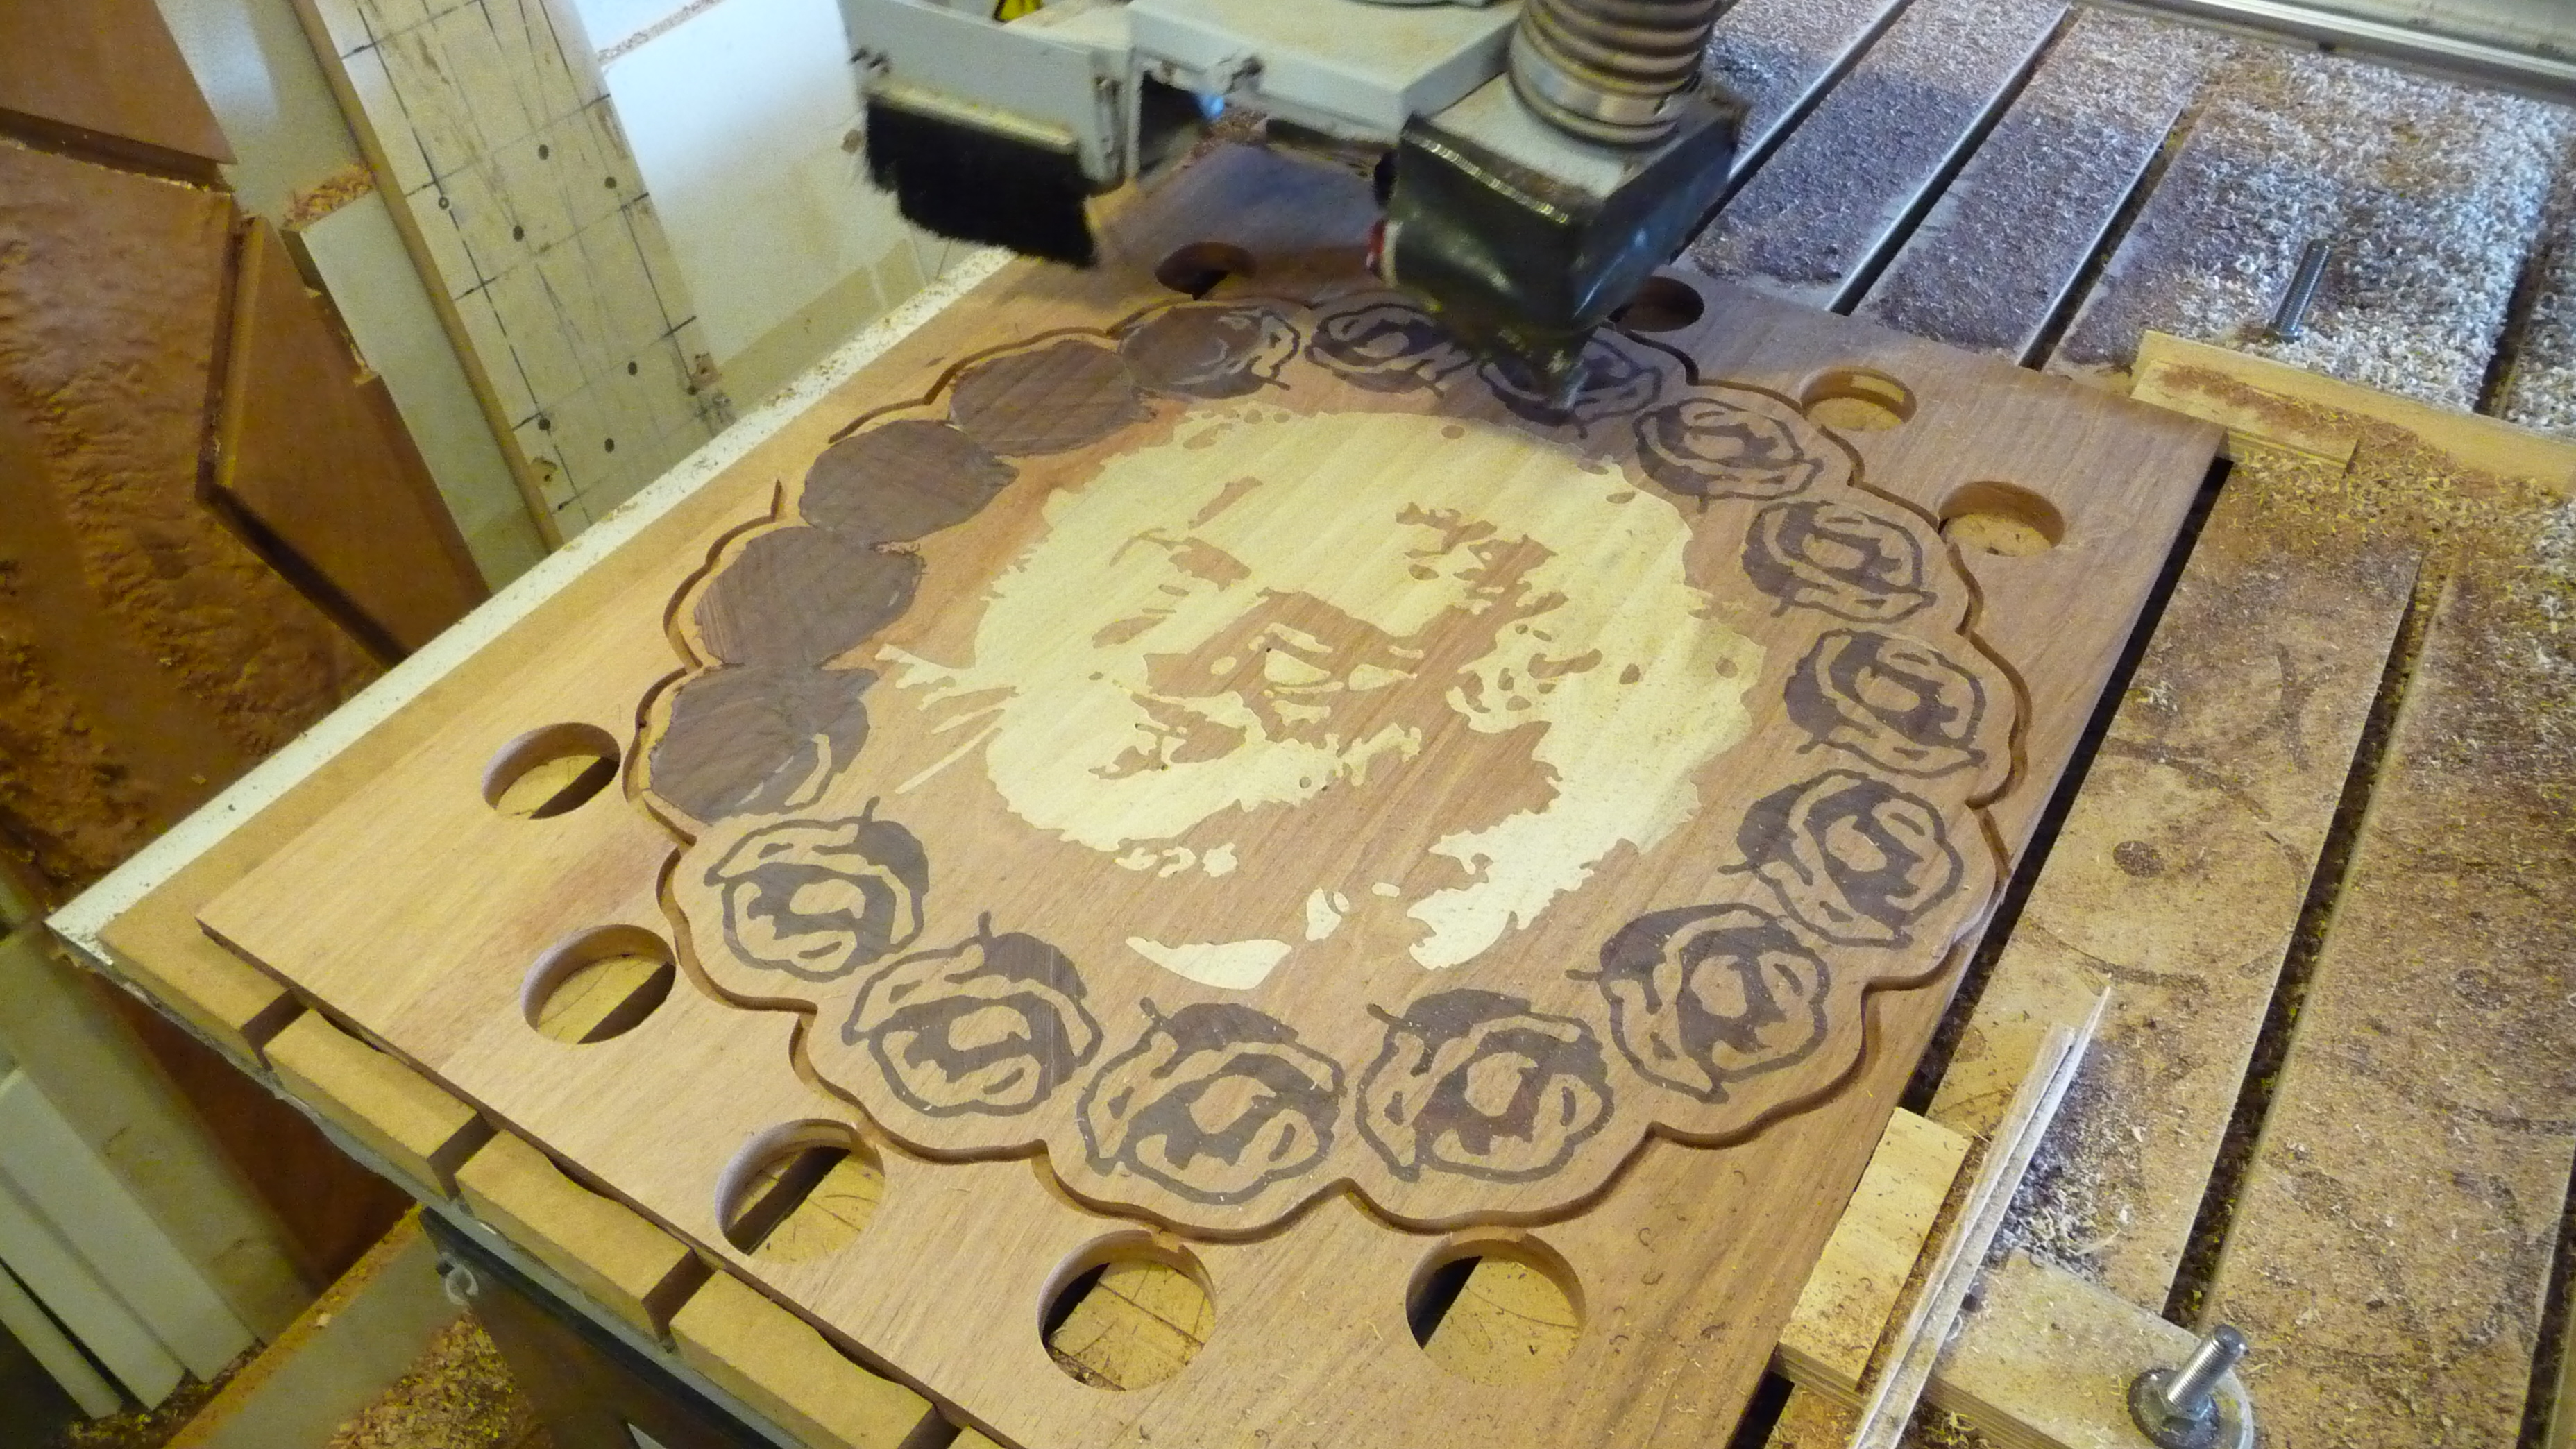 CNC Routed Wood Inlaid Artwork in progress